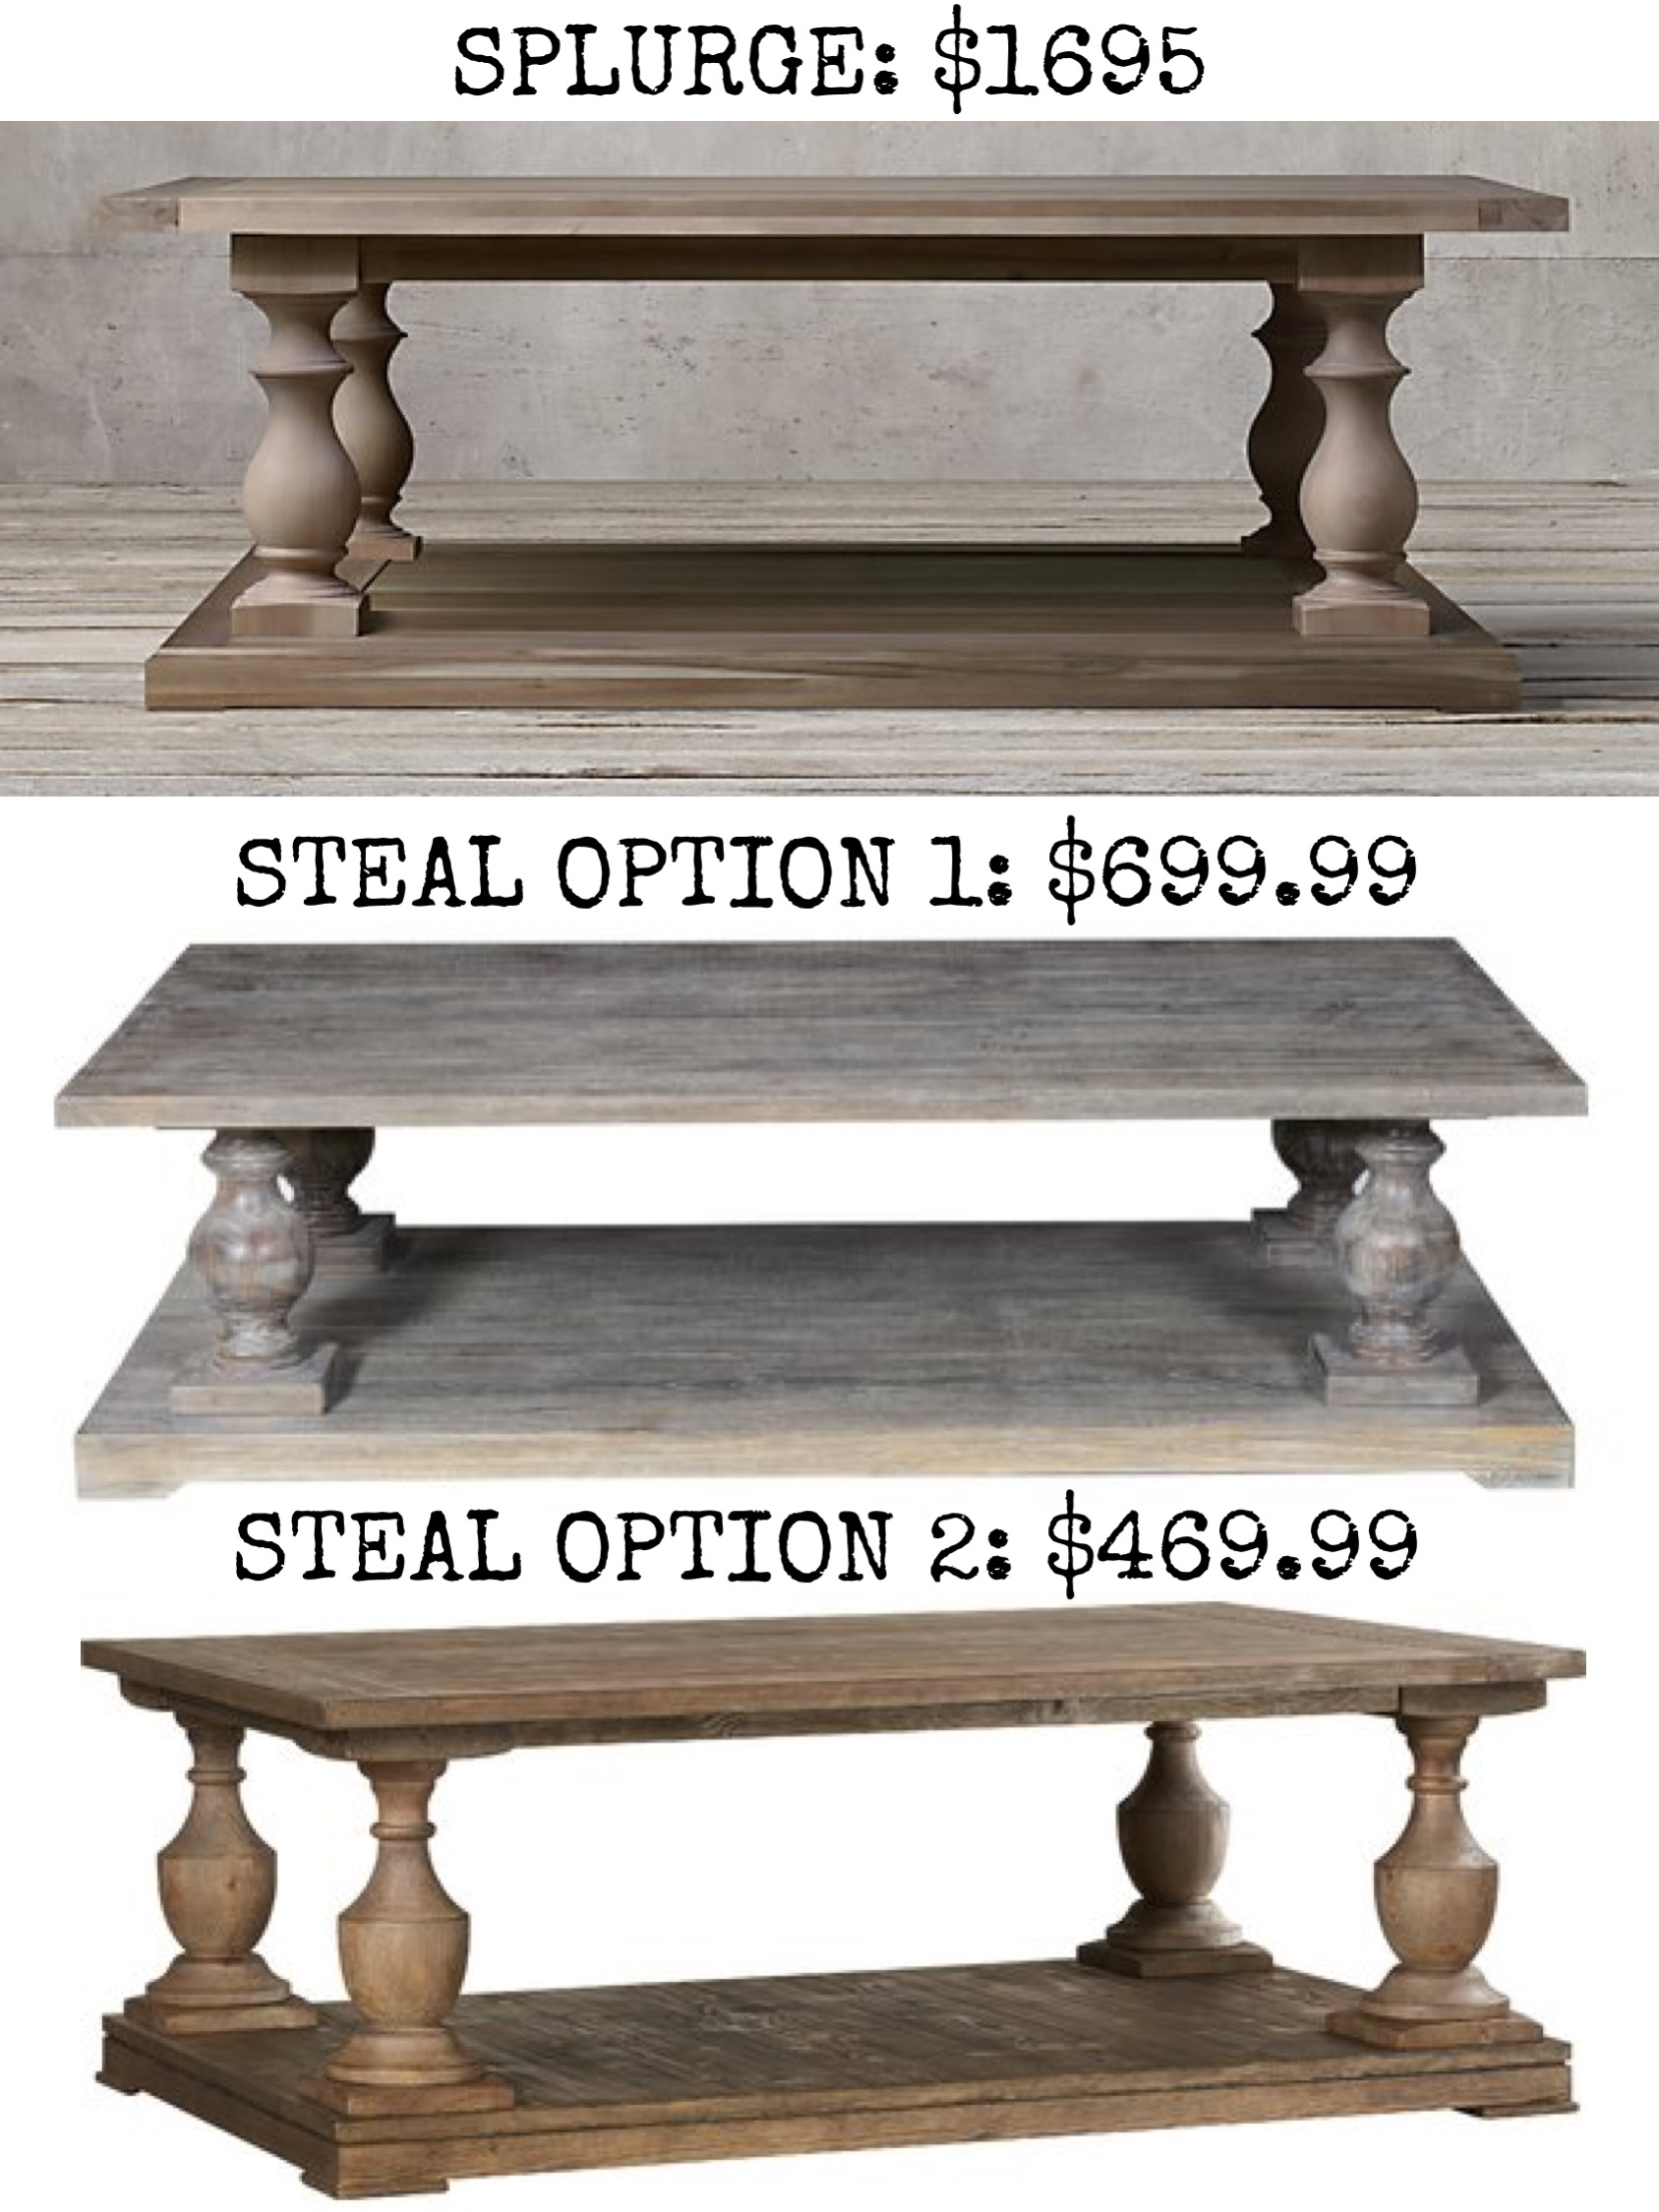 Restoration Hardware The Look For Less House Of Hargrove - Restoration hardware coffee table look alike